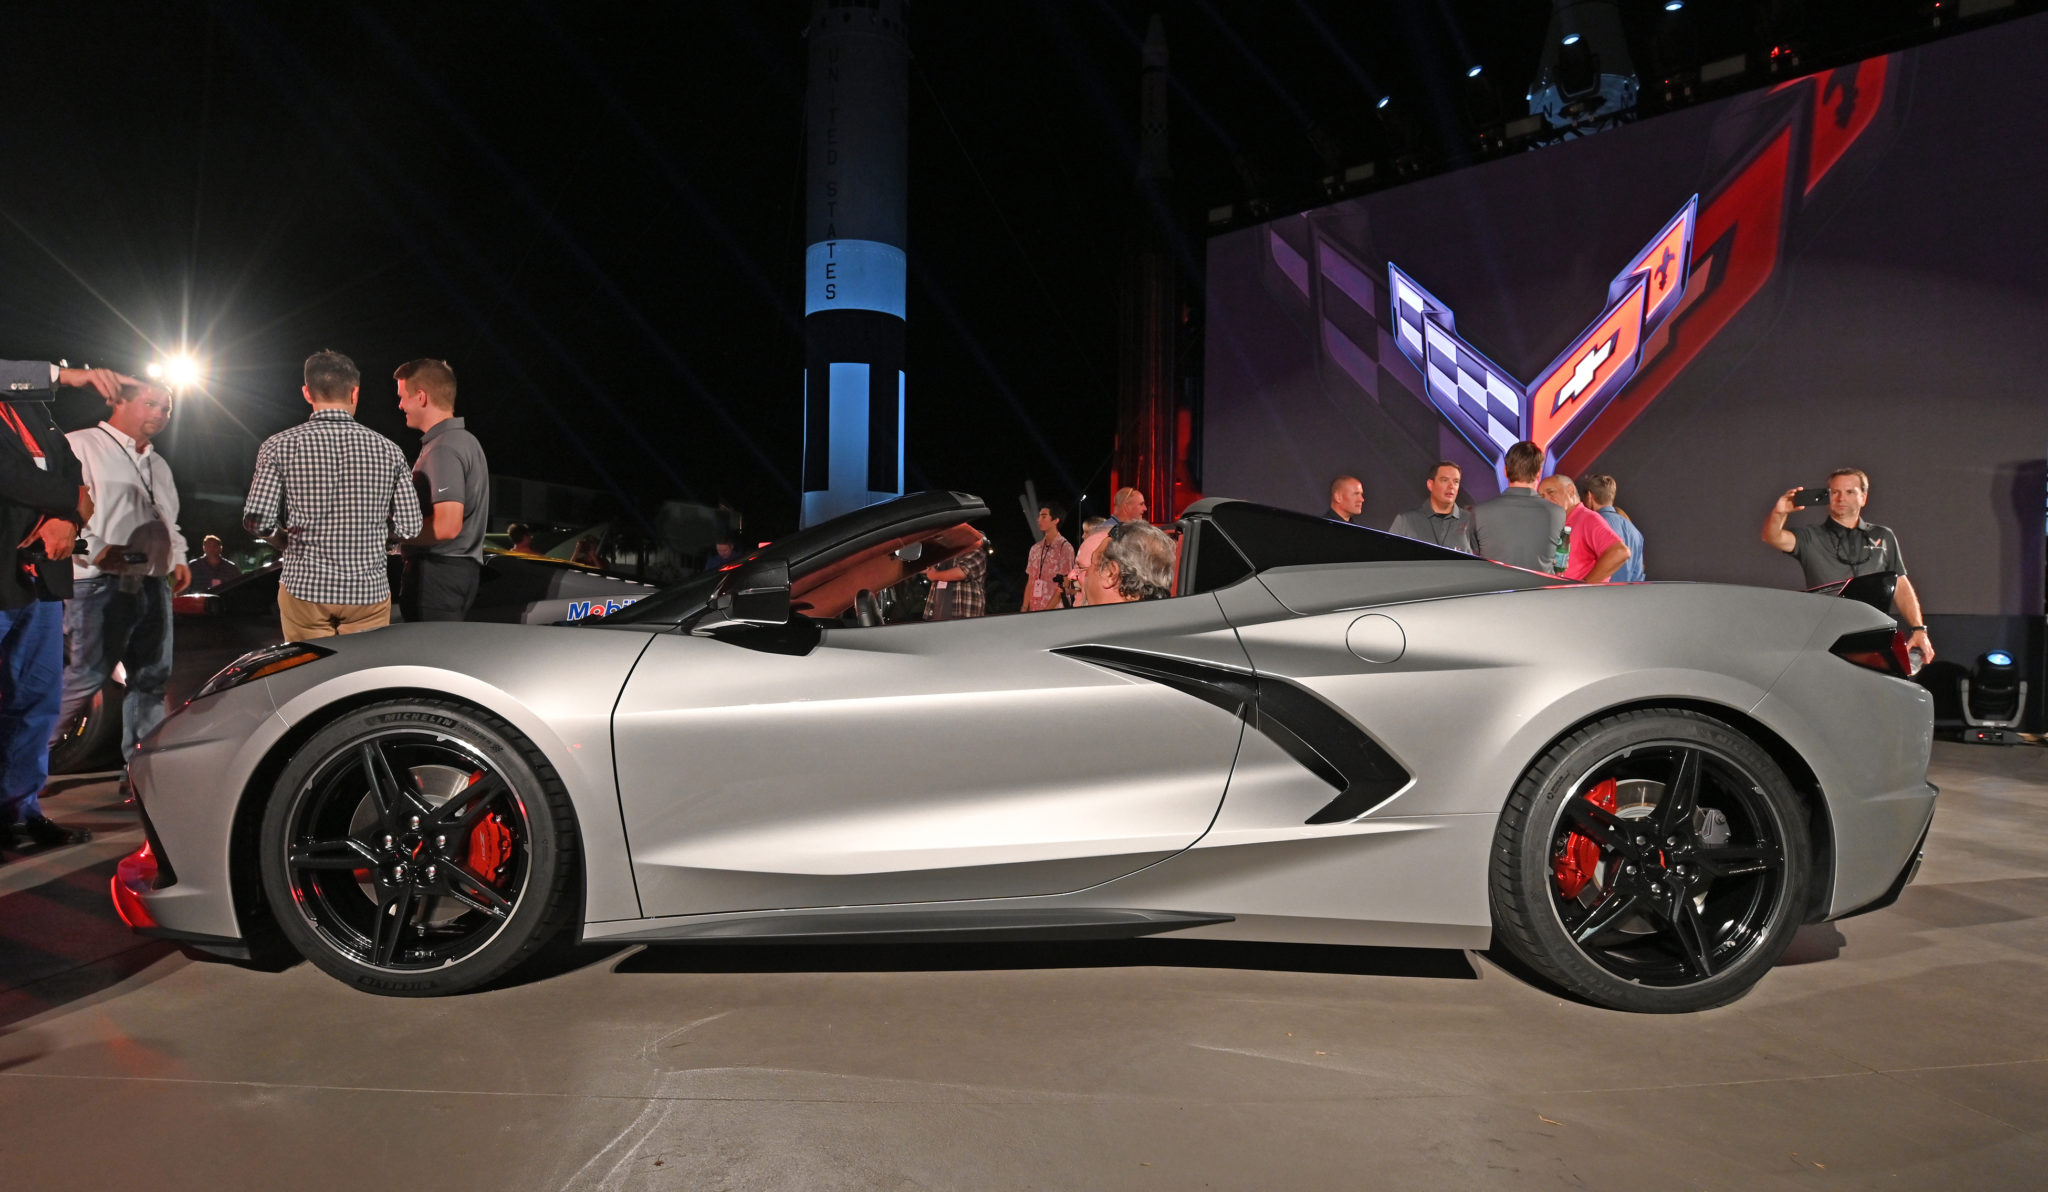 IS THERE A CHEVROLET CORVETTE SUV IN THE BRAND'S FUTURE?